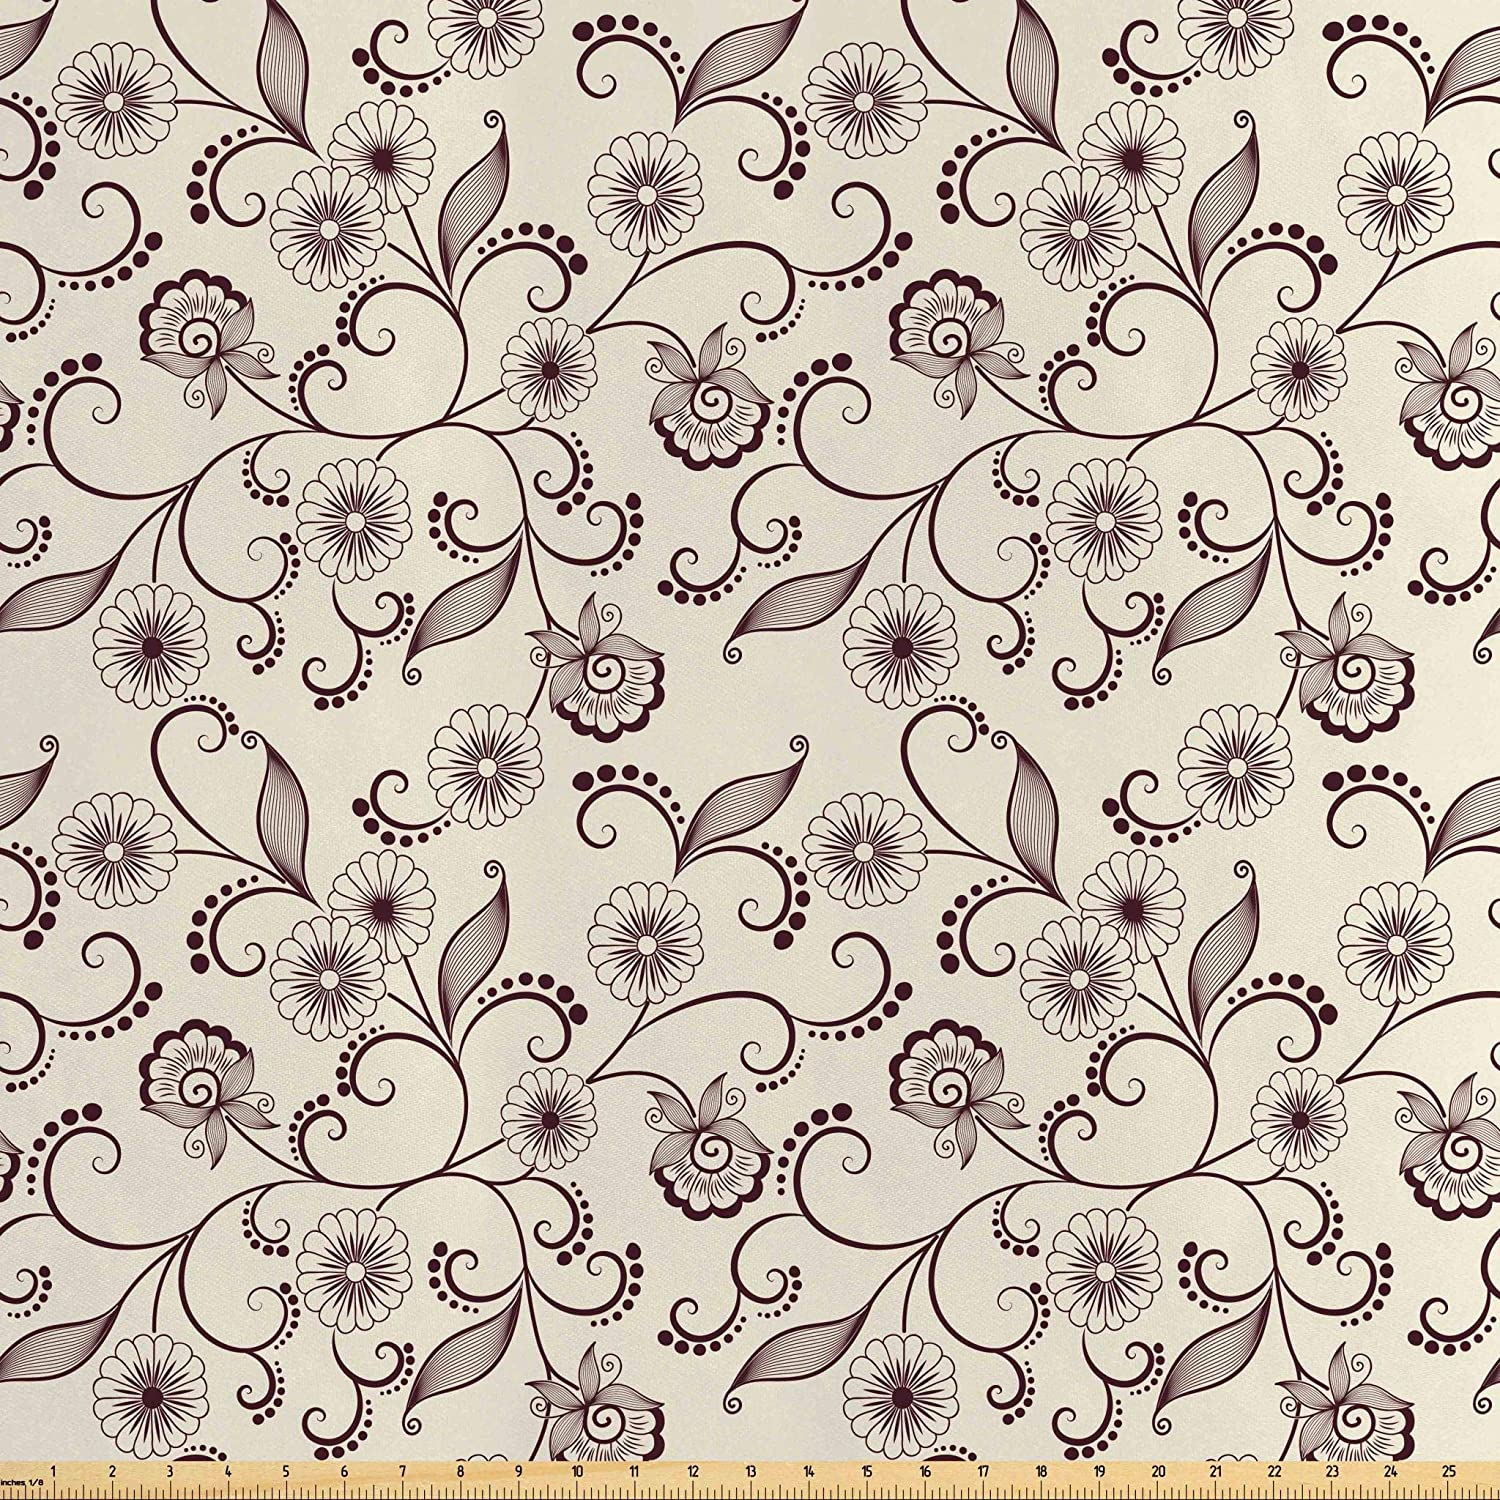 Lunarable Floral Fabric by The Yard, Old Fashioned Flower Patterns with Curving Leaves Elements Nostalgic Shabby Motifs, Decorative Satin Fabric for Home Textiles and Crafts, 3 Yards, Brown Cream